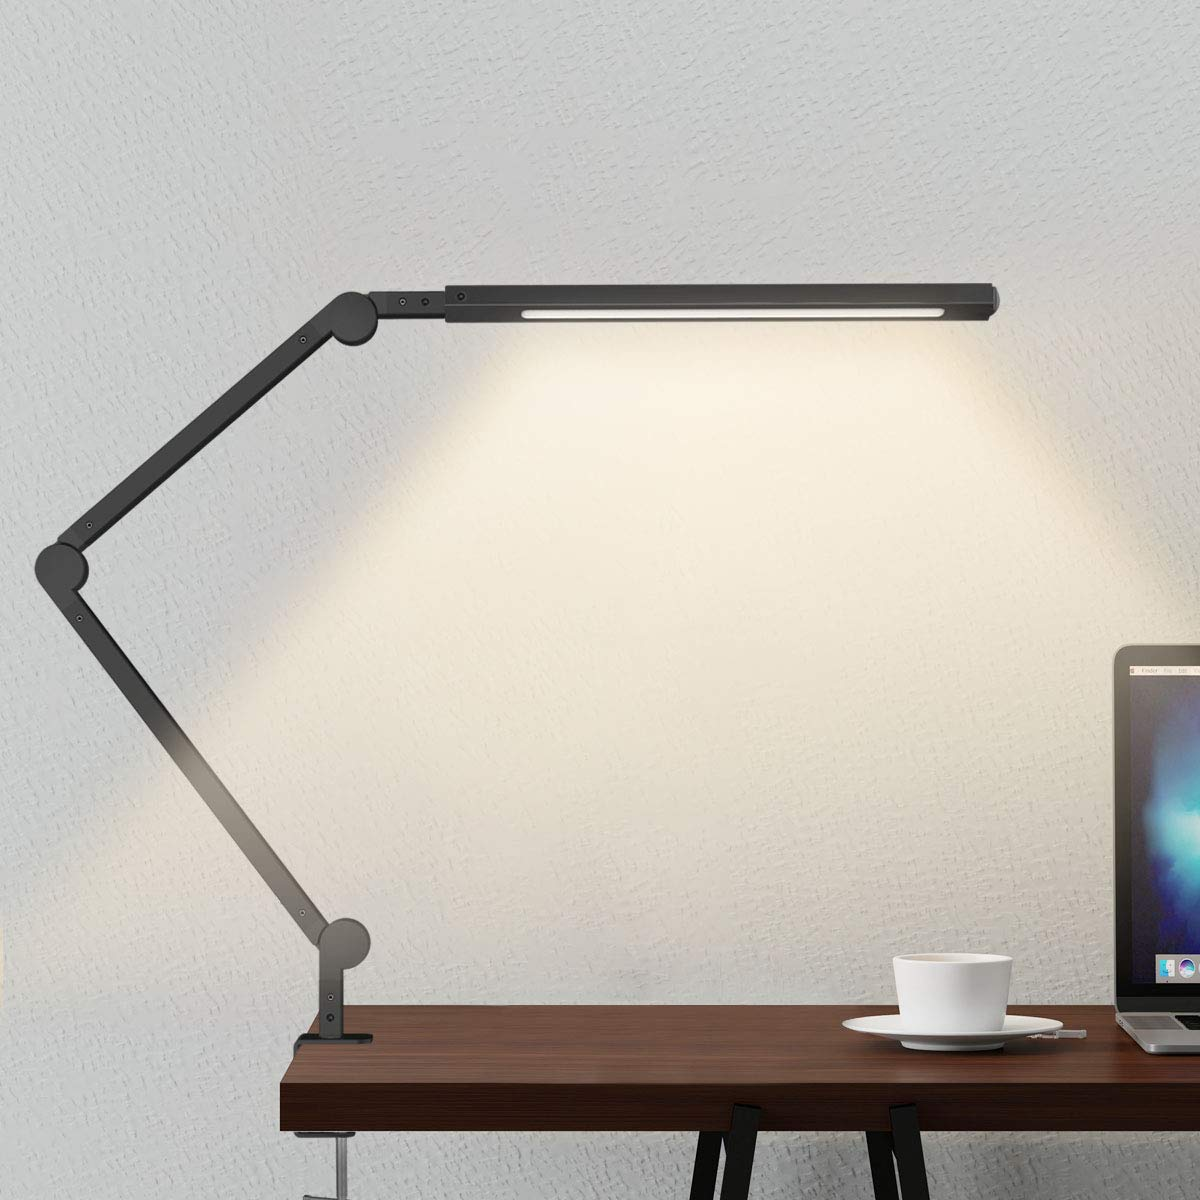 Swing Arm Lamp, LED Desk Lamp with Clamp, 9W Eye-Care Dimmable Light, Timer, Memory, 6 Color Modes, JolyJoy Modern Architect Table Lamp for Task Study Reading Working/Home Dorm Office (Black) by Joly Joy